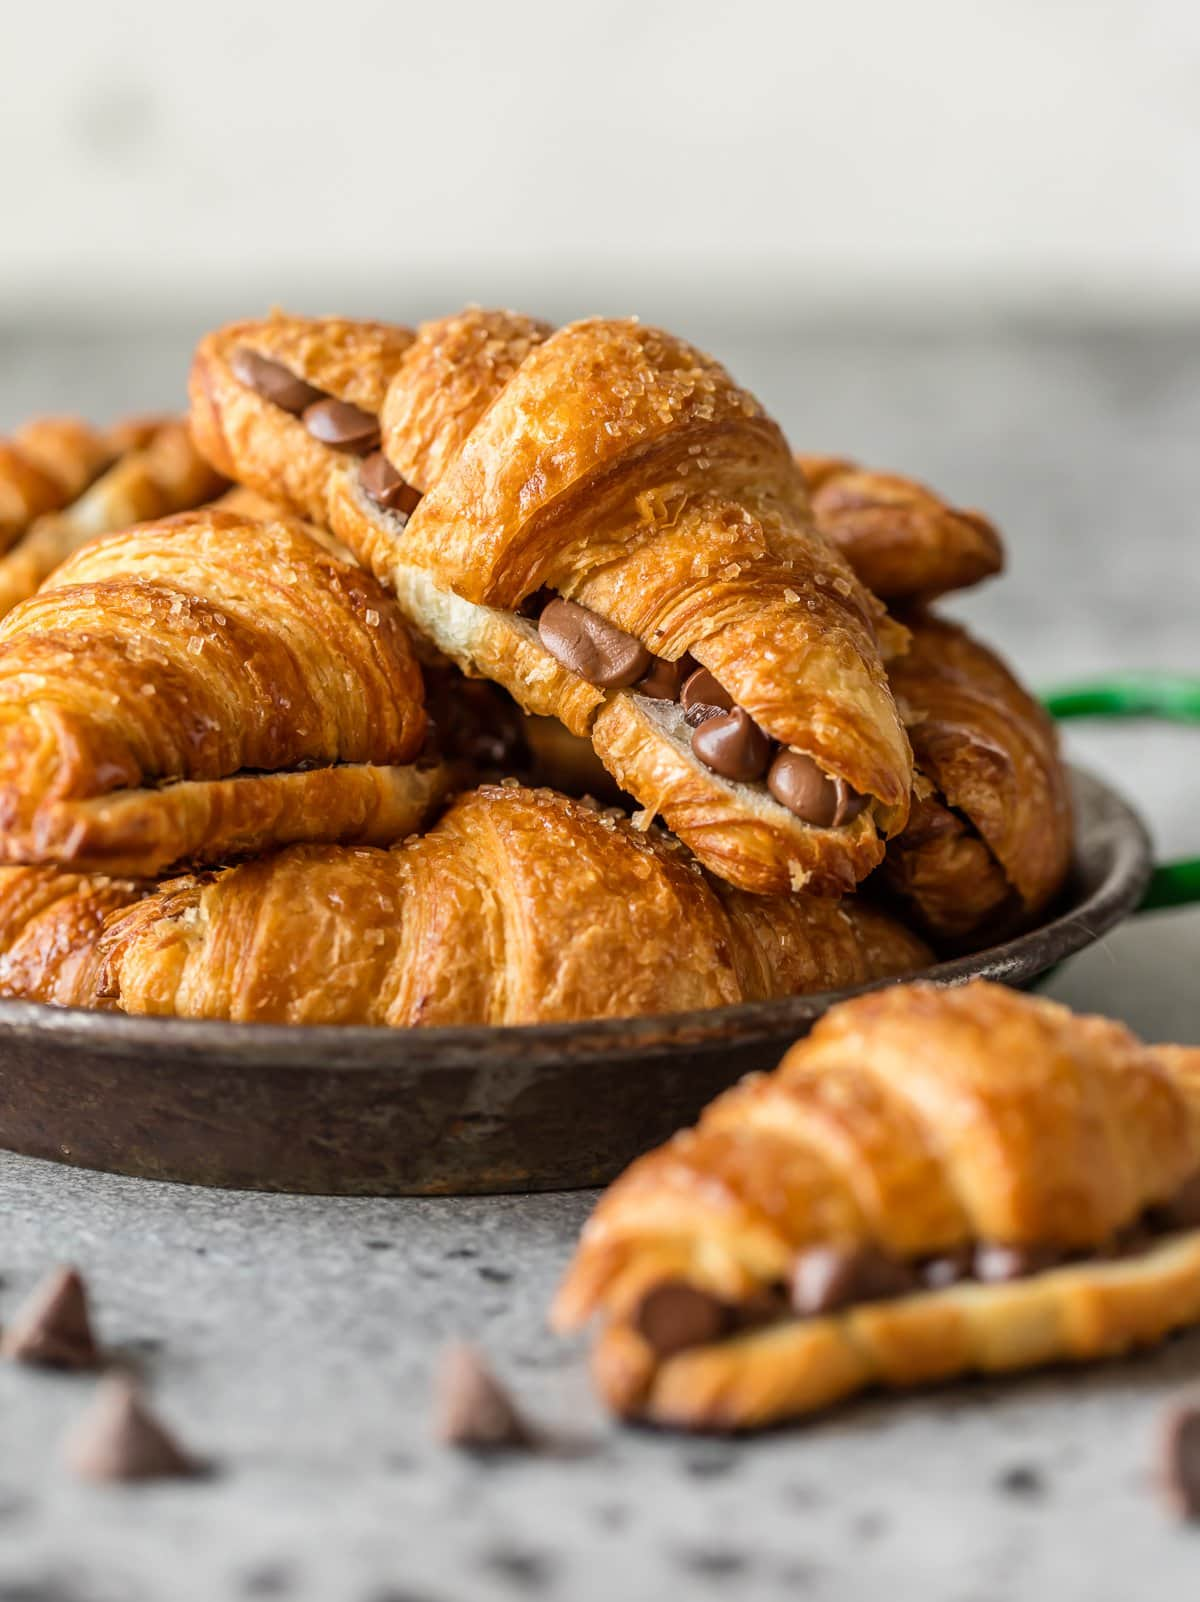 Sweet croissants photo